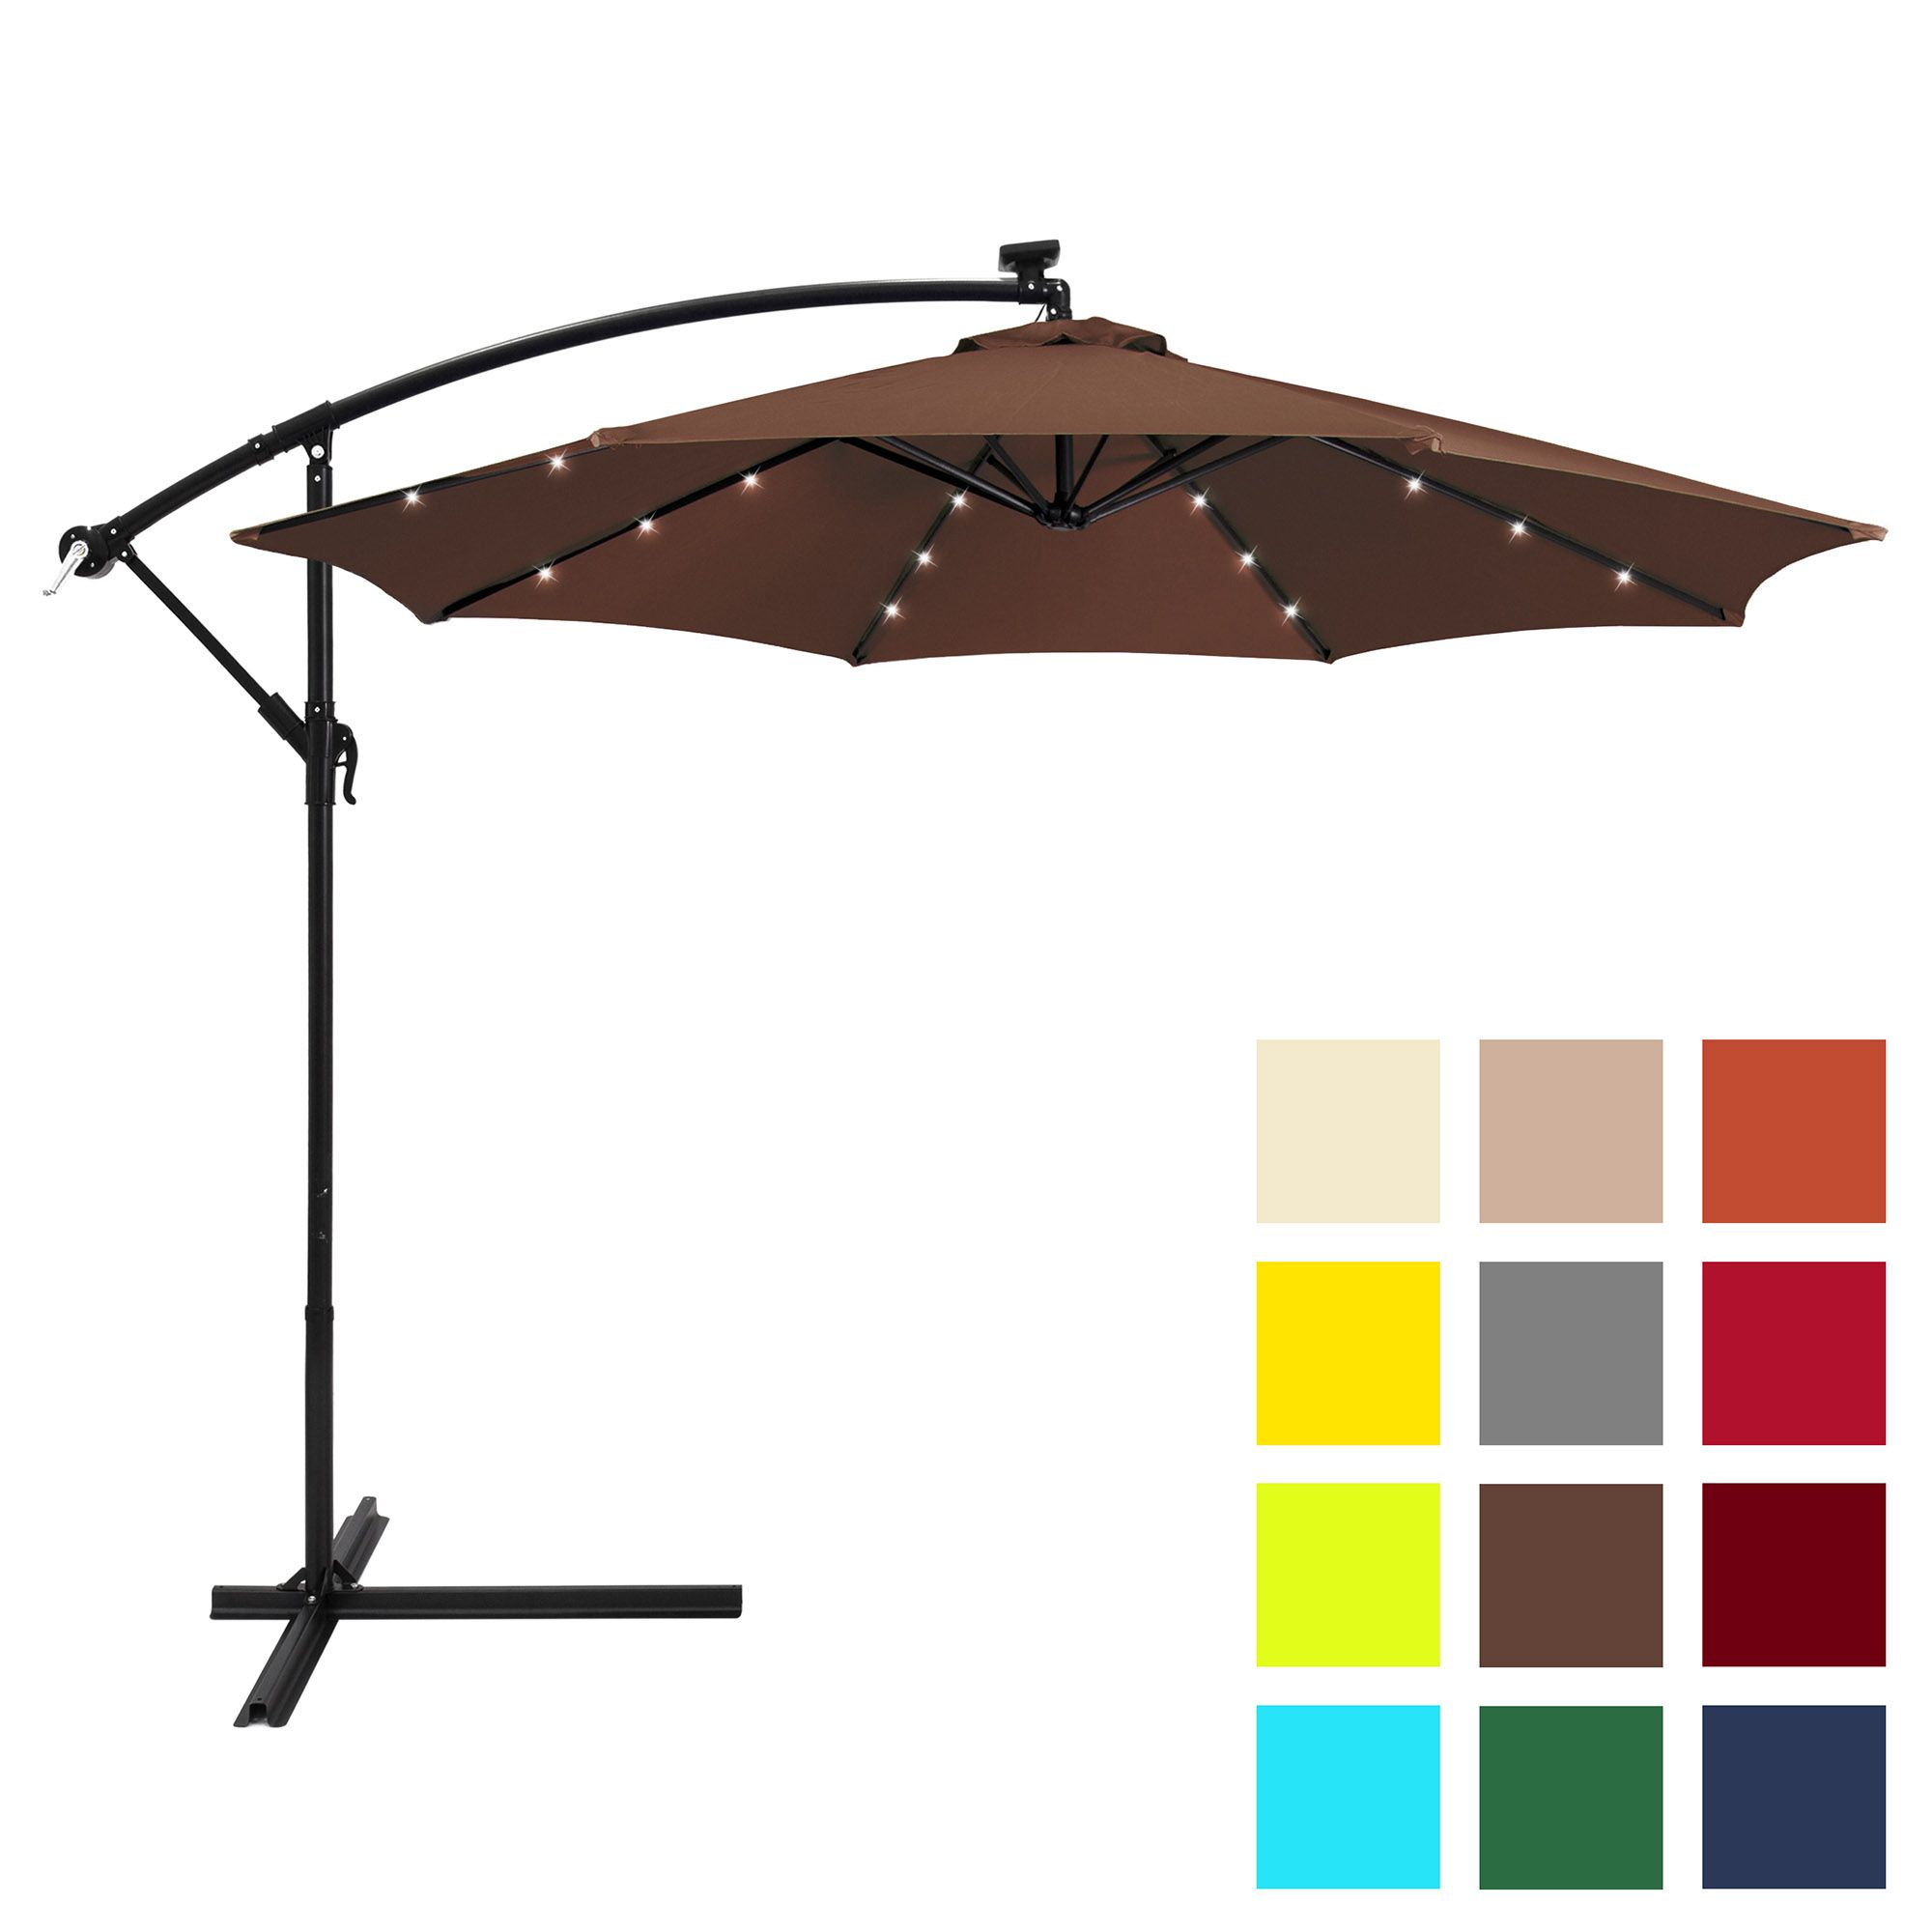 Best Choice Products 10ft Solar Led Offset Hanging Market Patio Umbrella W Easy Tilt Adjustment Polyester Shade 8 Ribs For Backyard Poolside Brown Walma Offset Patio Umbrella Patio Umbrella Offset Umbrella